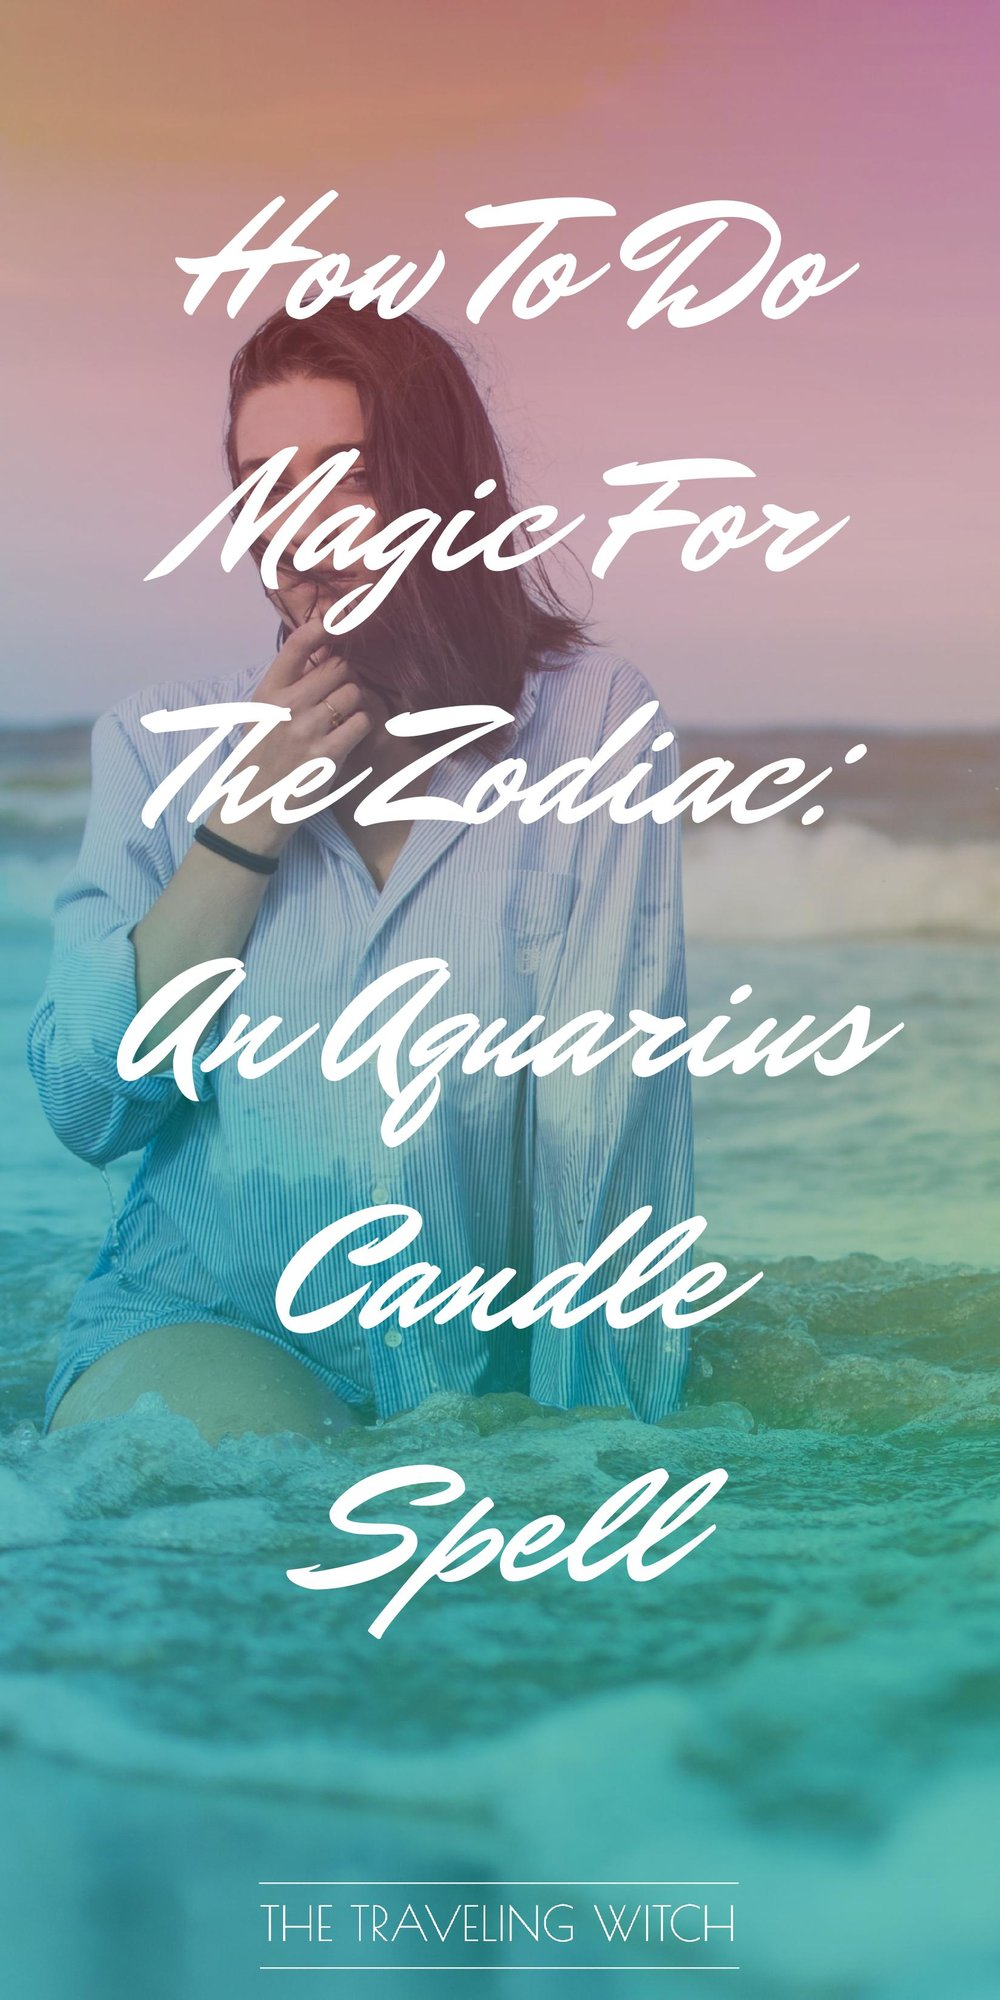 How To Do Magic For The Zodiac: An Aquarius Candle Spell // Witchcraft // The Traveling Witch